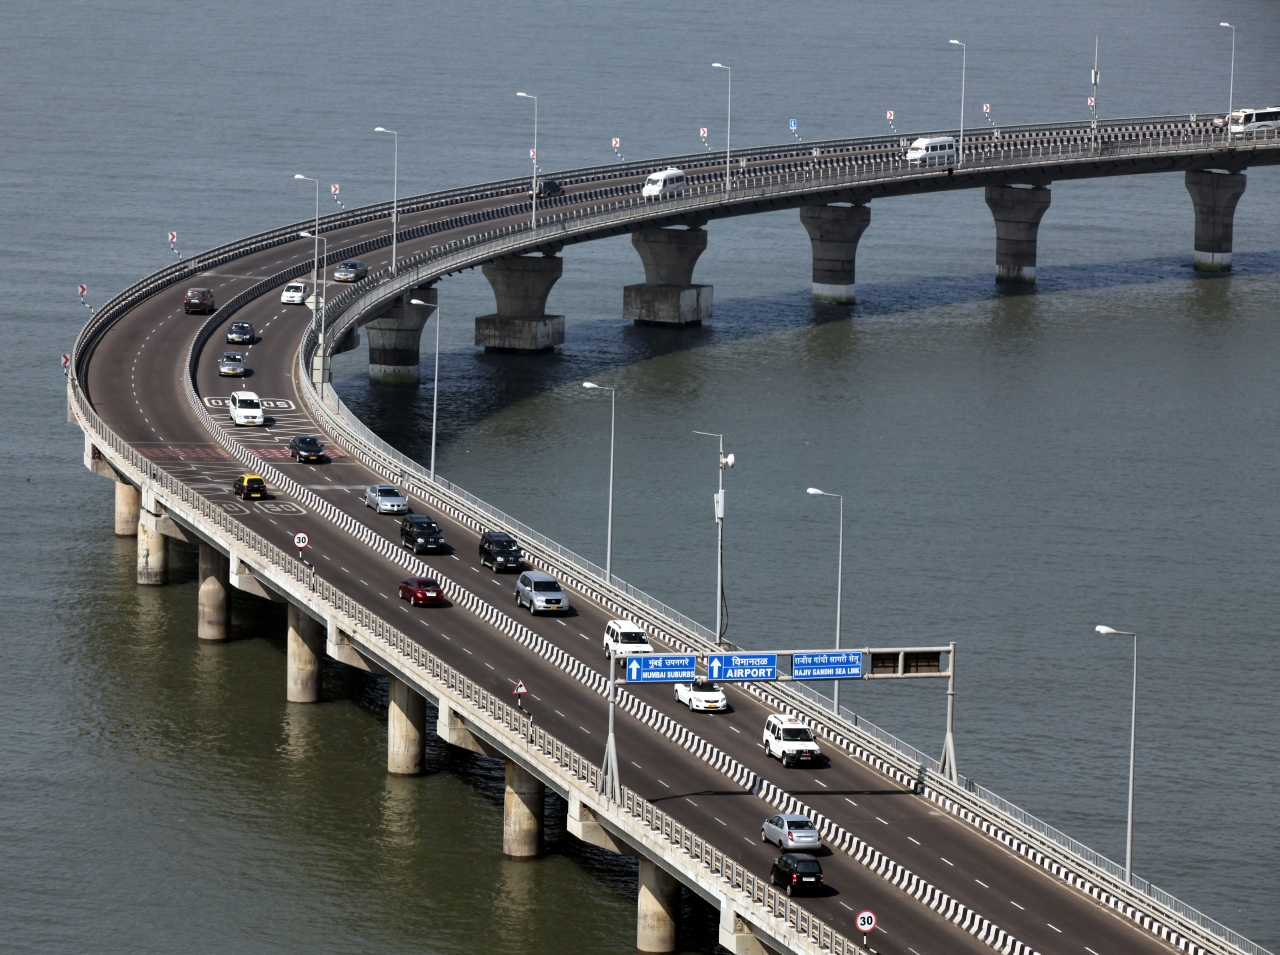 French President Nicolas Sarkozys convoy pass through Bandra-Worli Sea Link. (Kunal Patil/Hindustan Times via Getty Images)